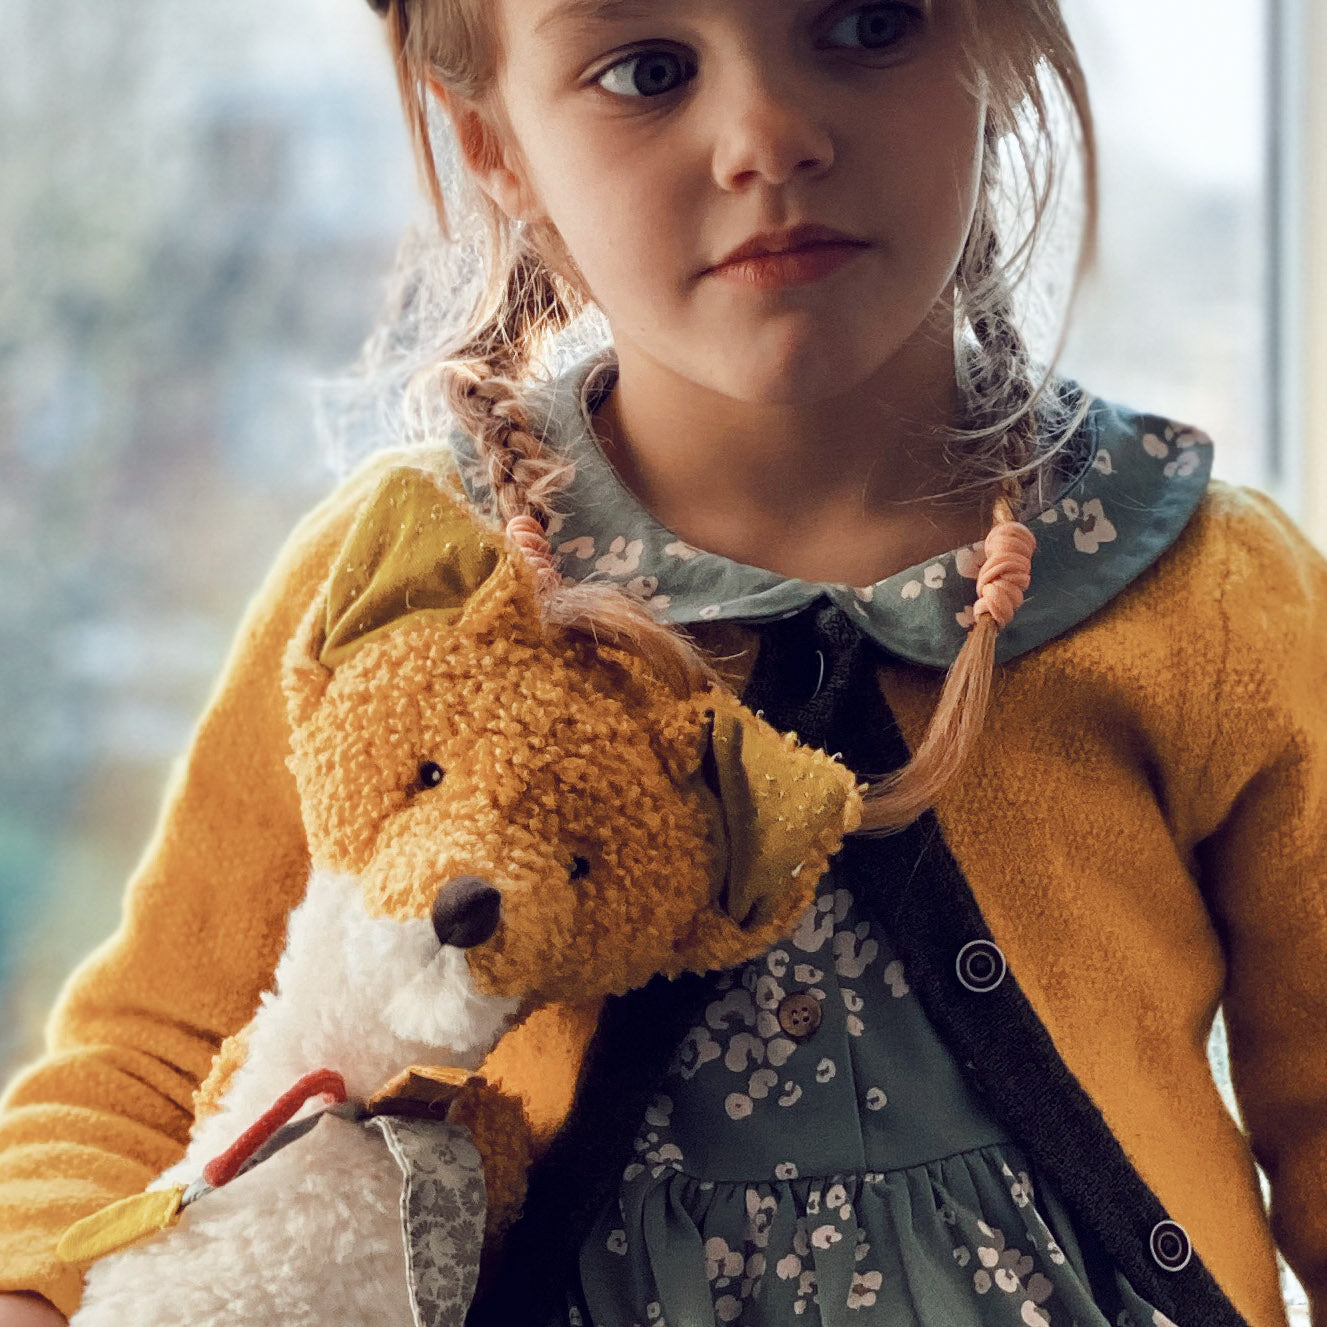 Soft toys for comfort and imaginative play